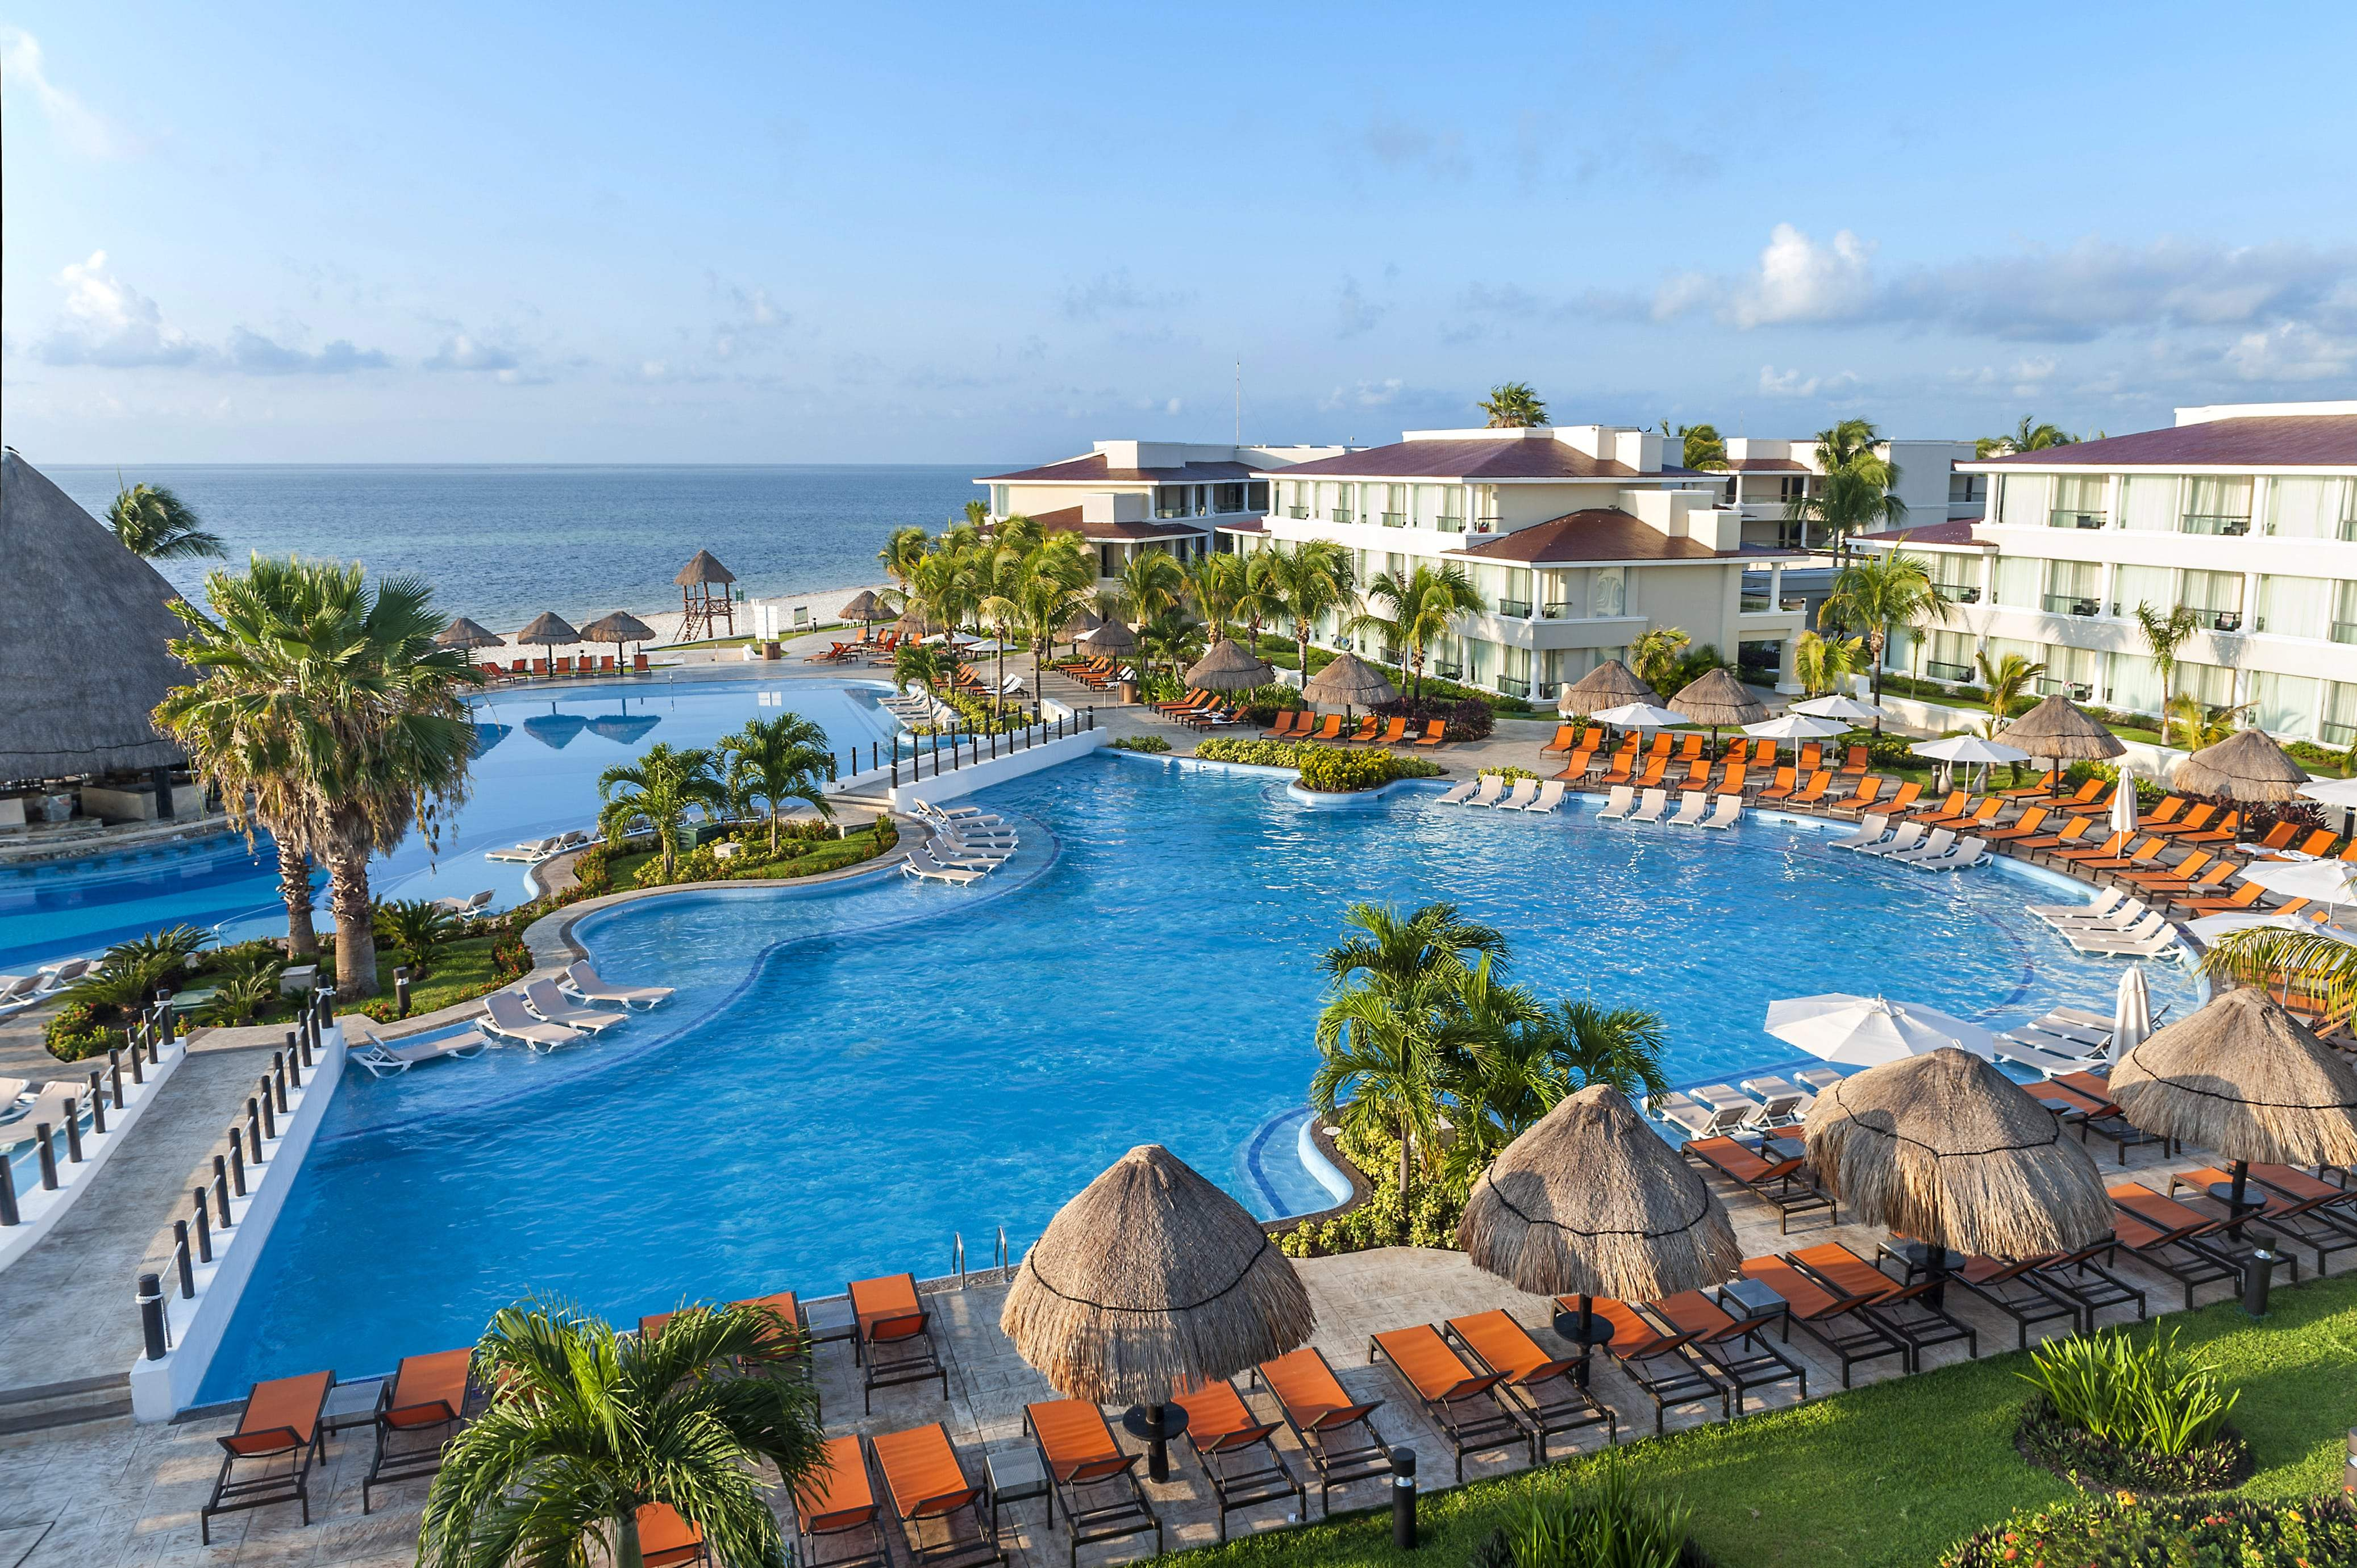 Moon Palace in Cancun, Mexico won Best Golf Resort in the Americas